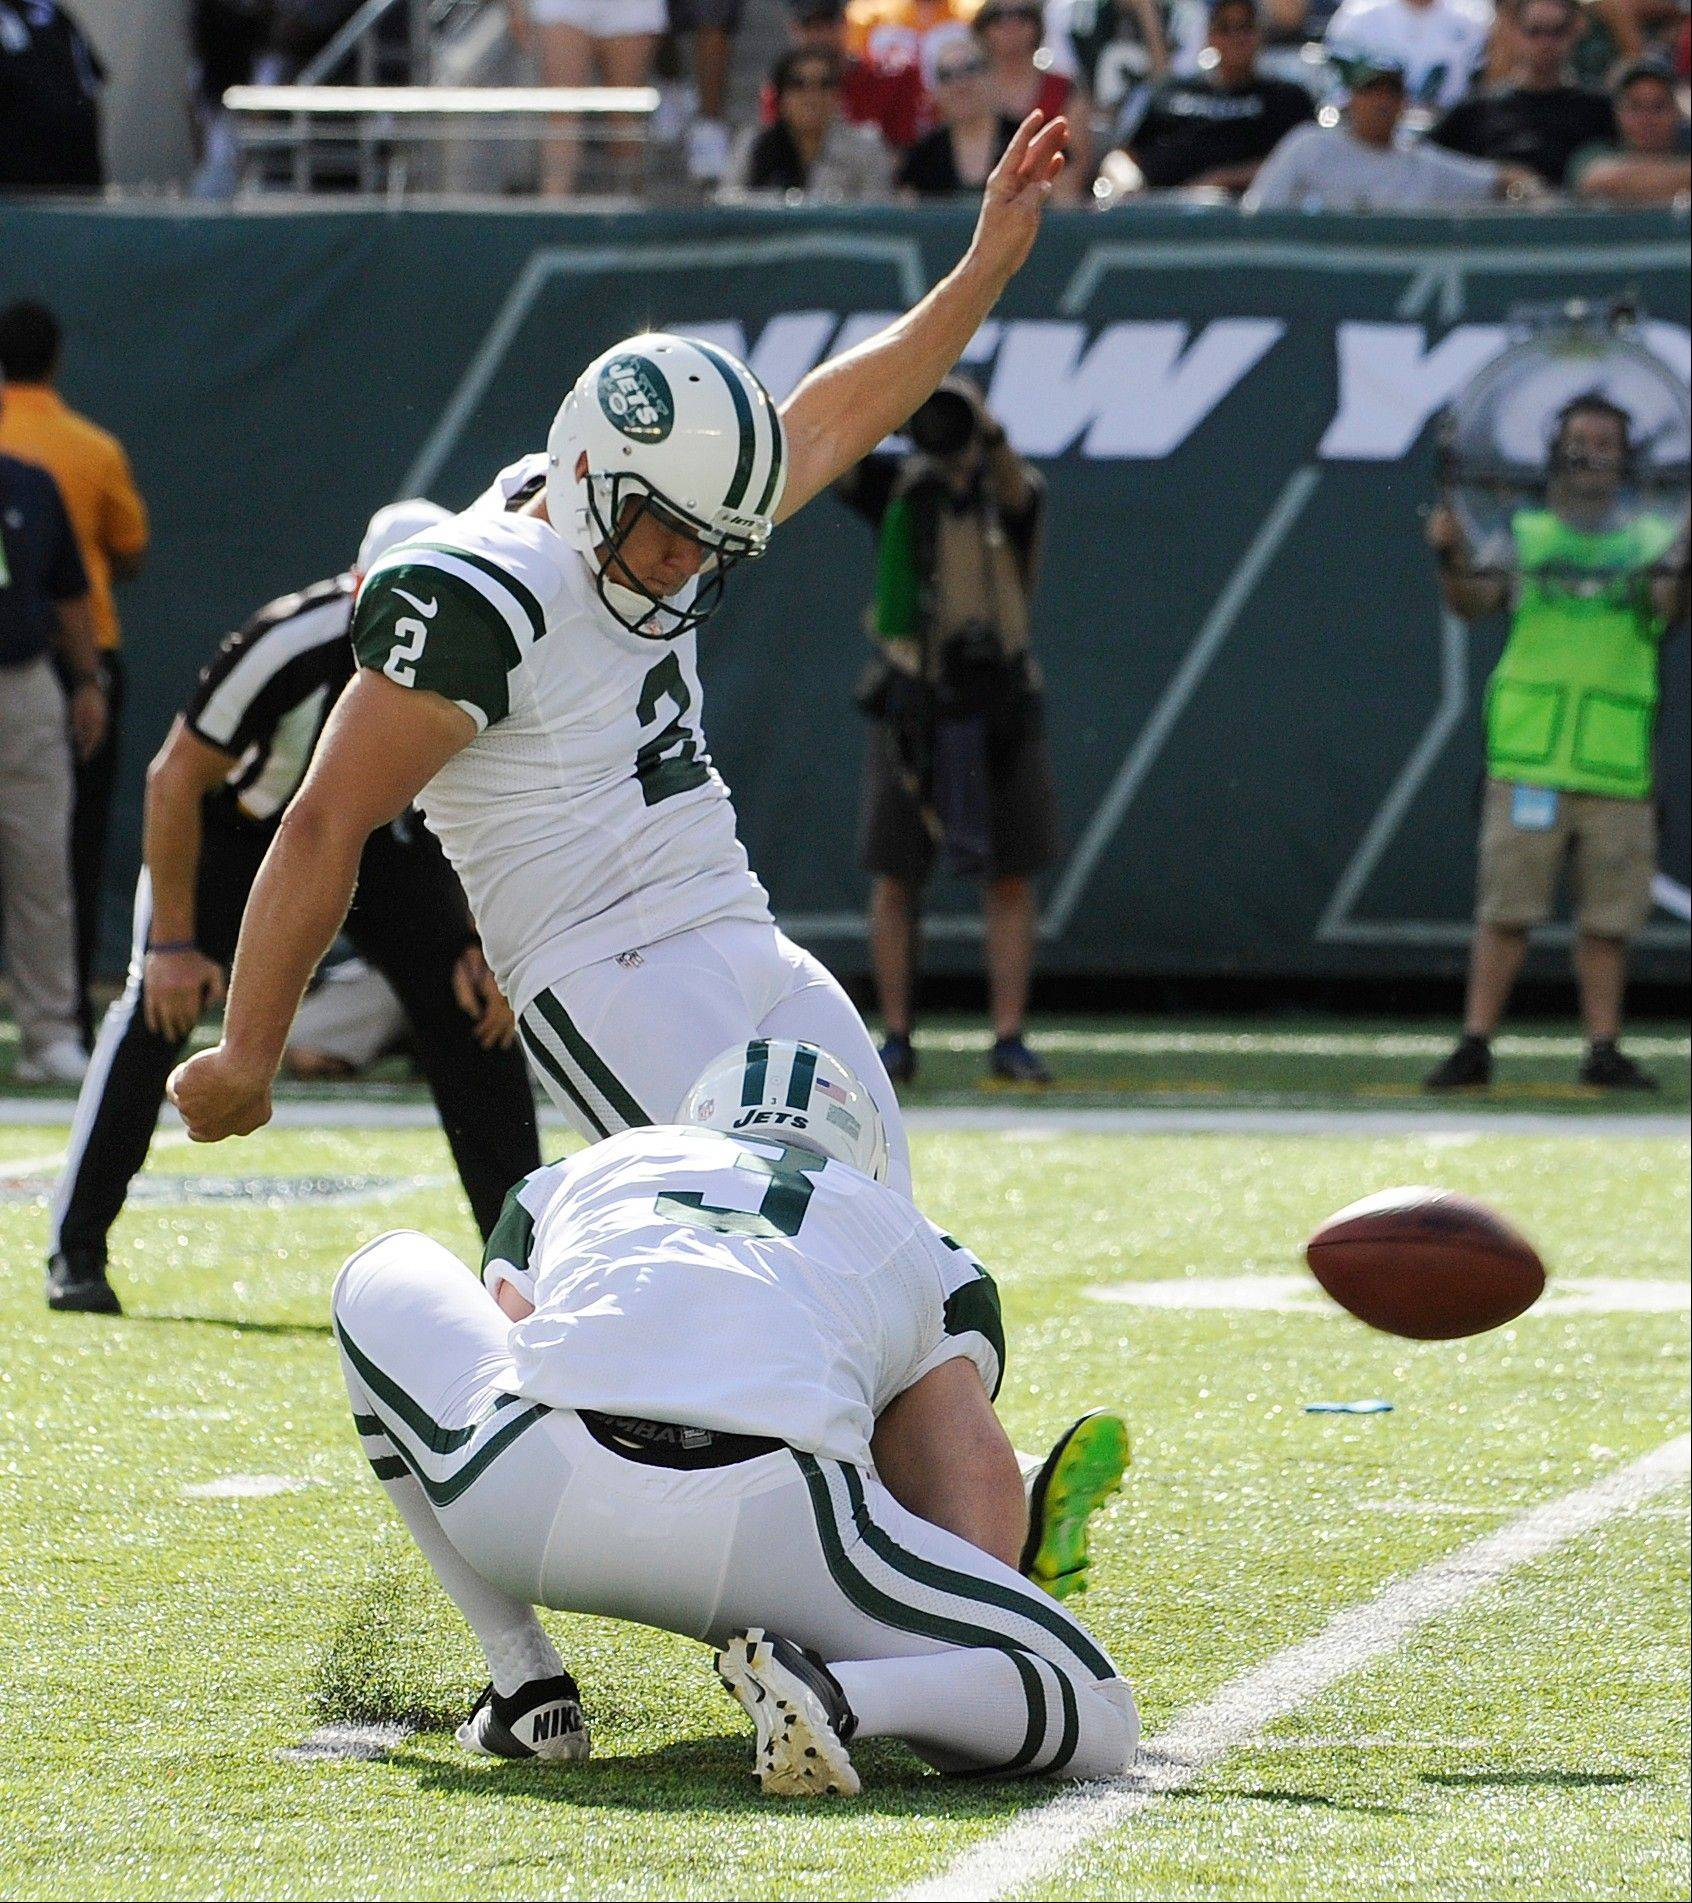 New York Jets� Nick Folk (2) kicks a 30-yard field goal as Robert Malone (3) holds in the second half of an NFL football game against the Tampa Bay Buccaneers, Sunday, Sept. 8, 2013, in East Rutherford, N.J.